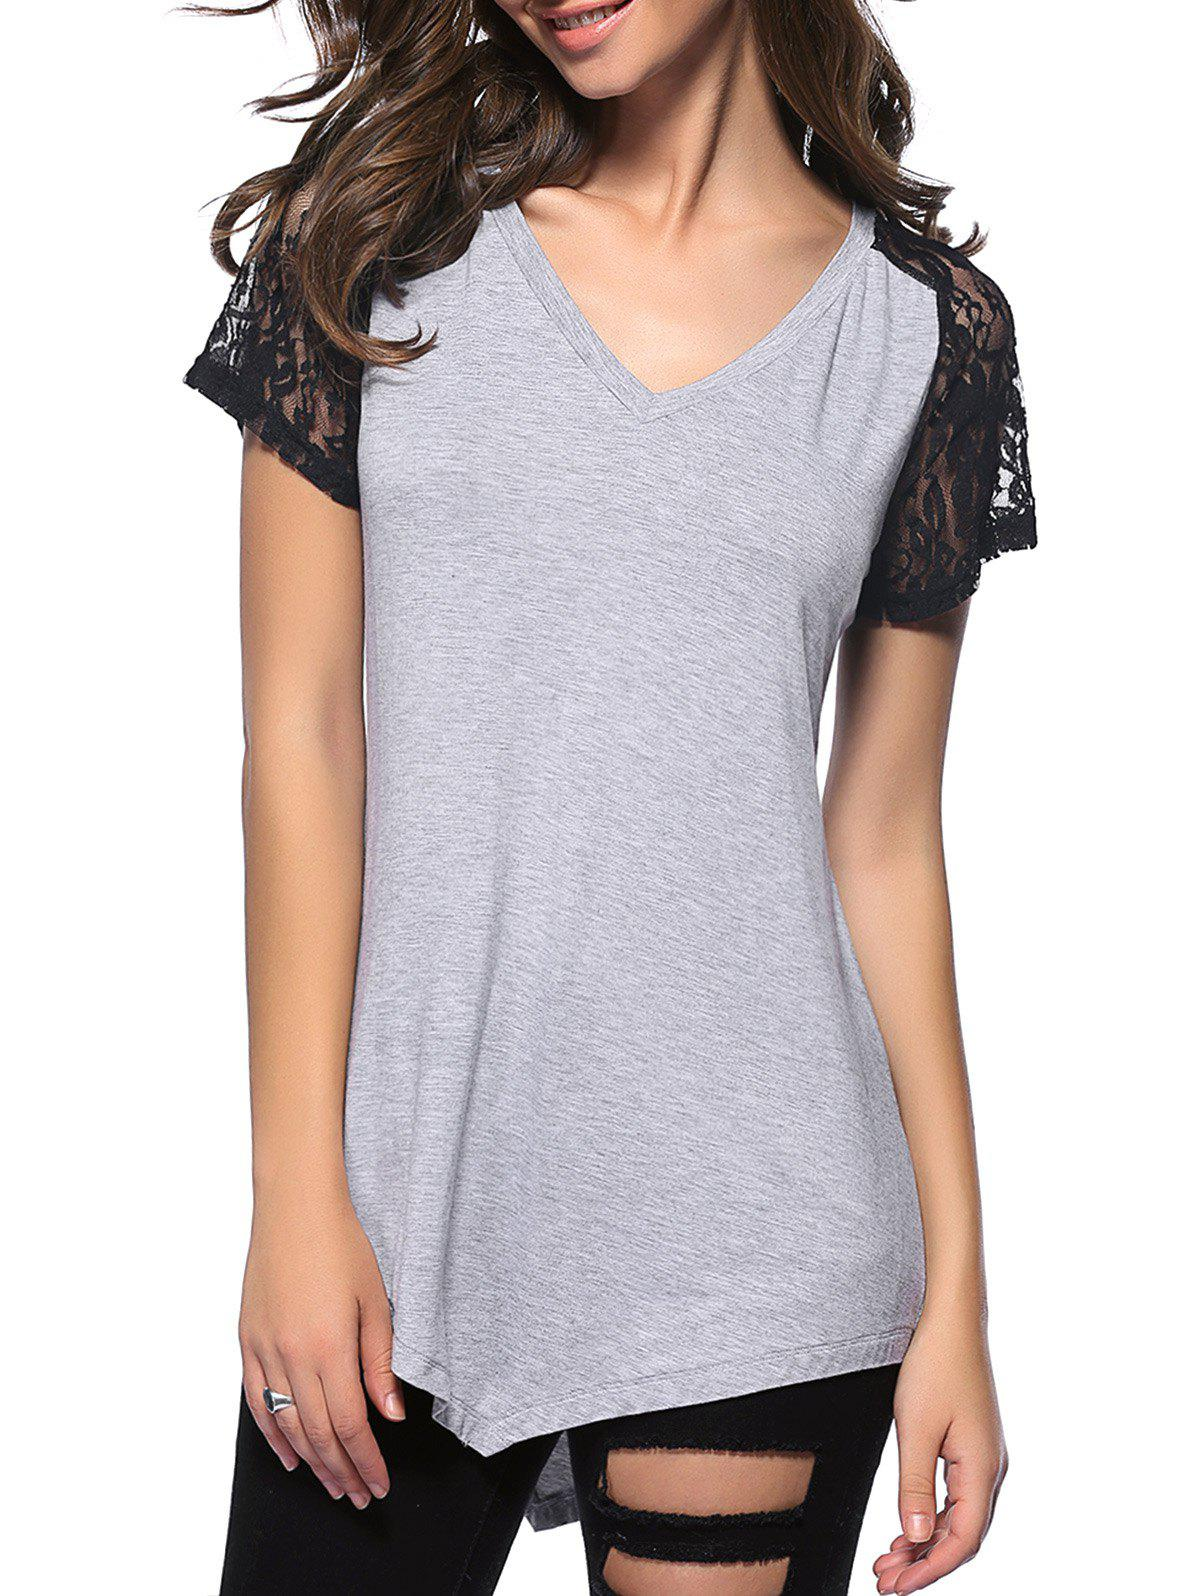 Casual Women's V-Neck Short Sleeve Shrink Fold Lace T-Shirt - LIGHT GRAY XL